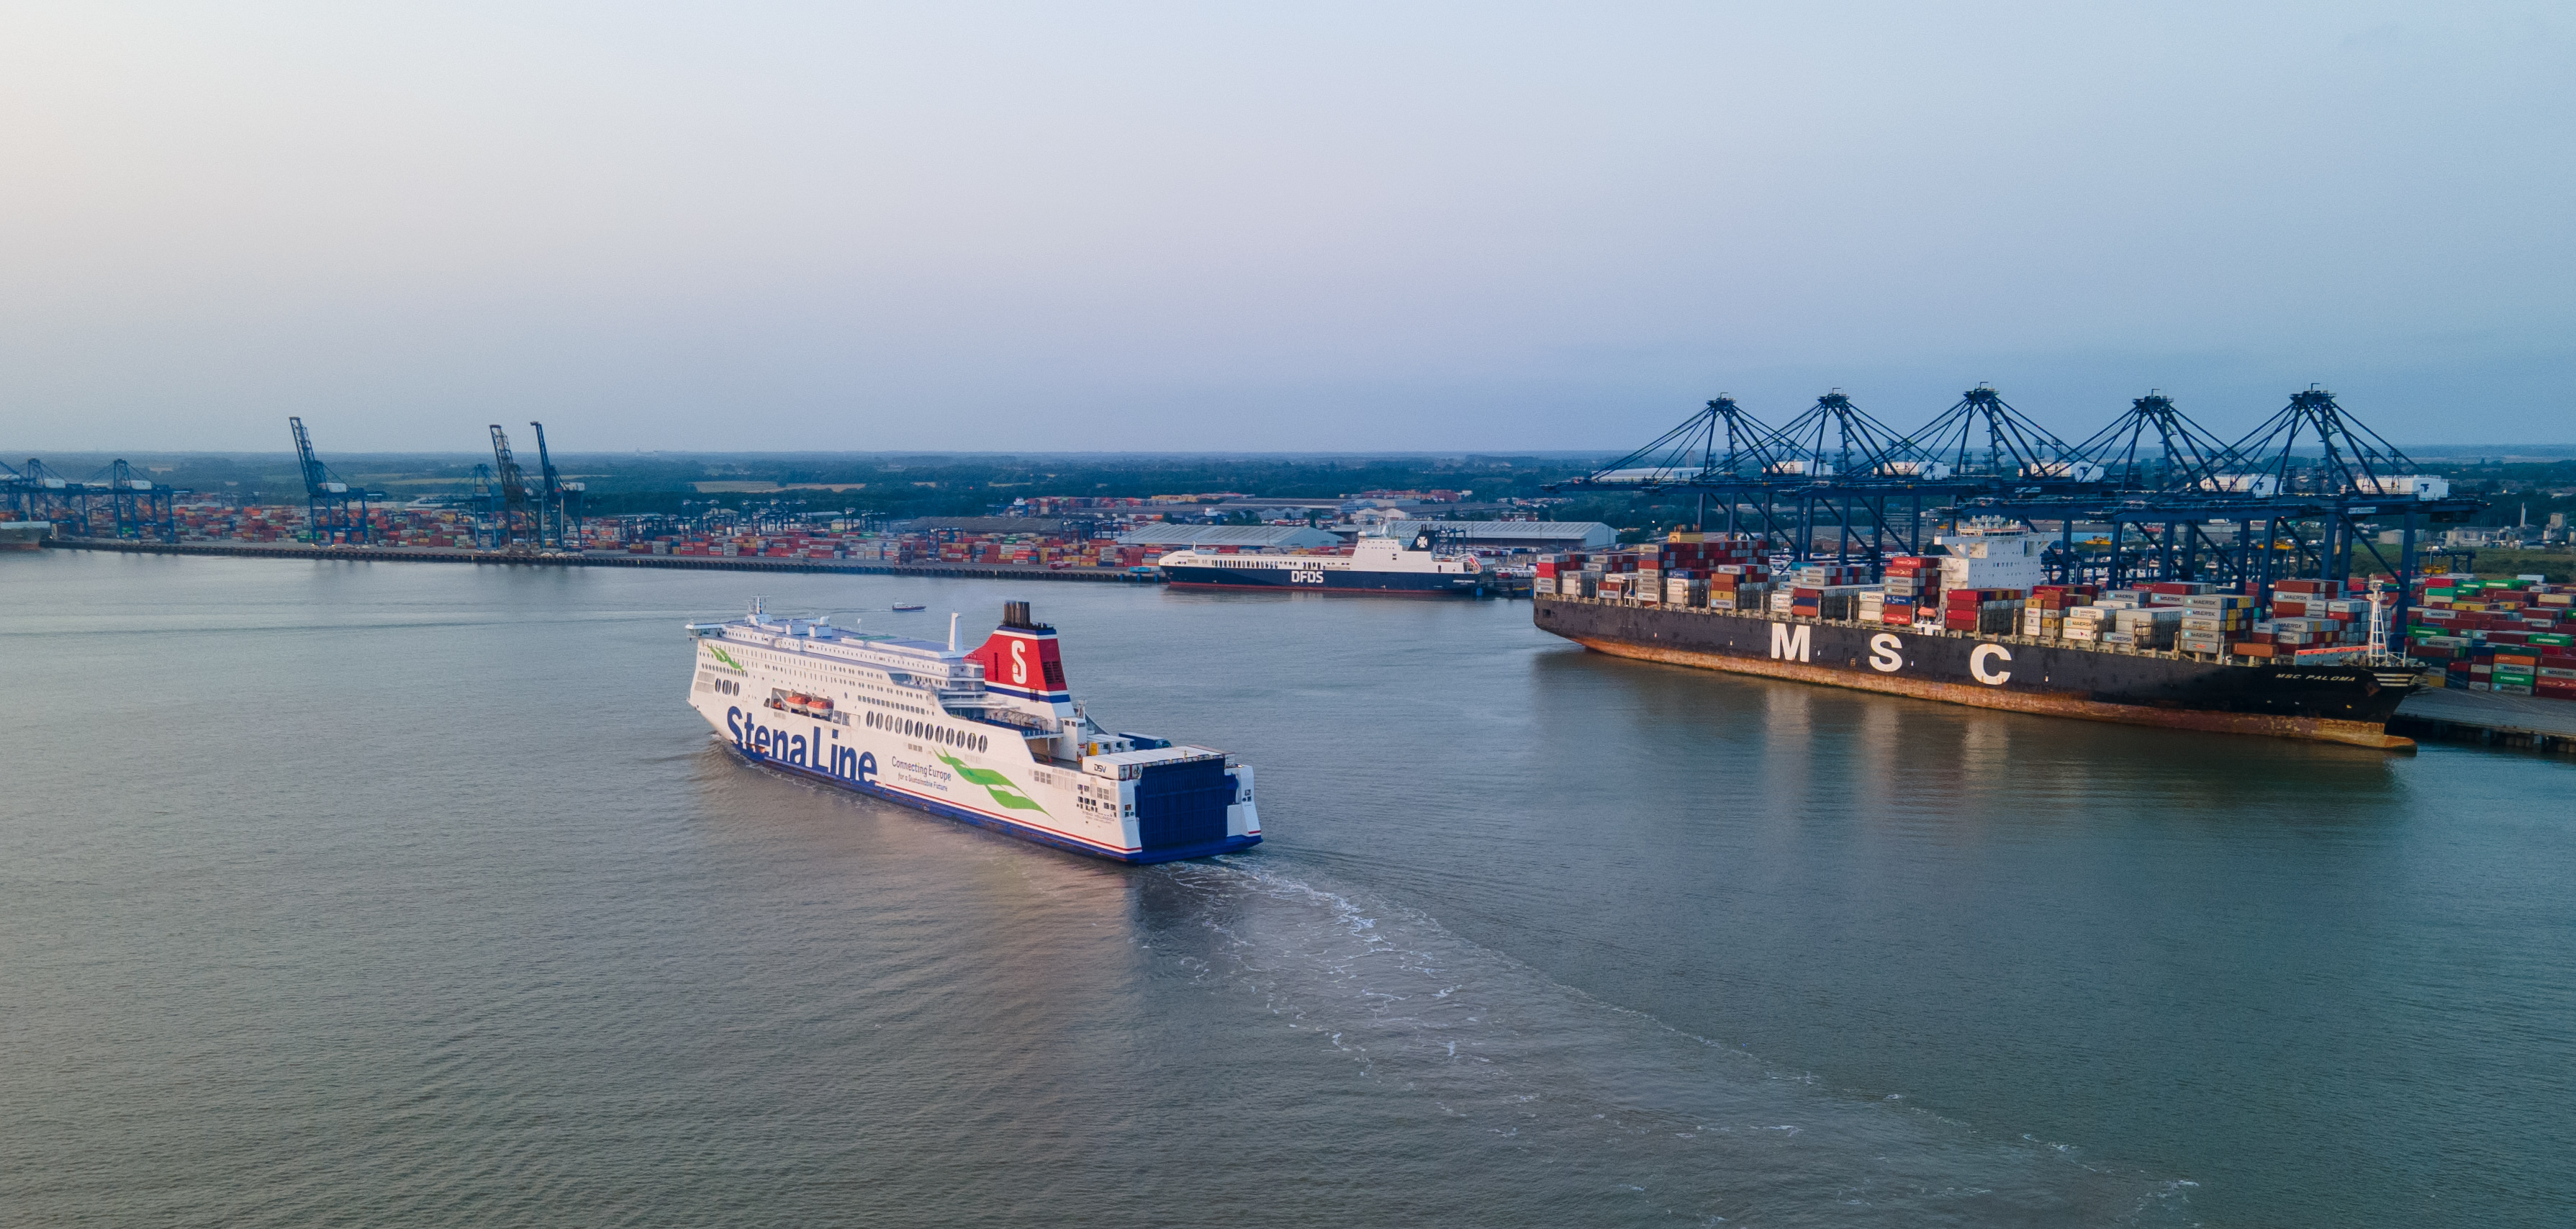 Harwich Ferry from Hook of Holland